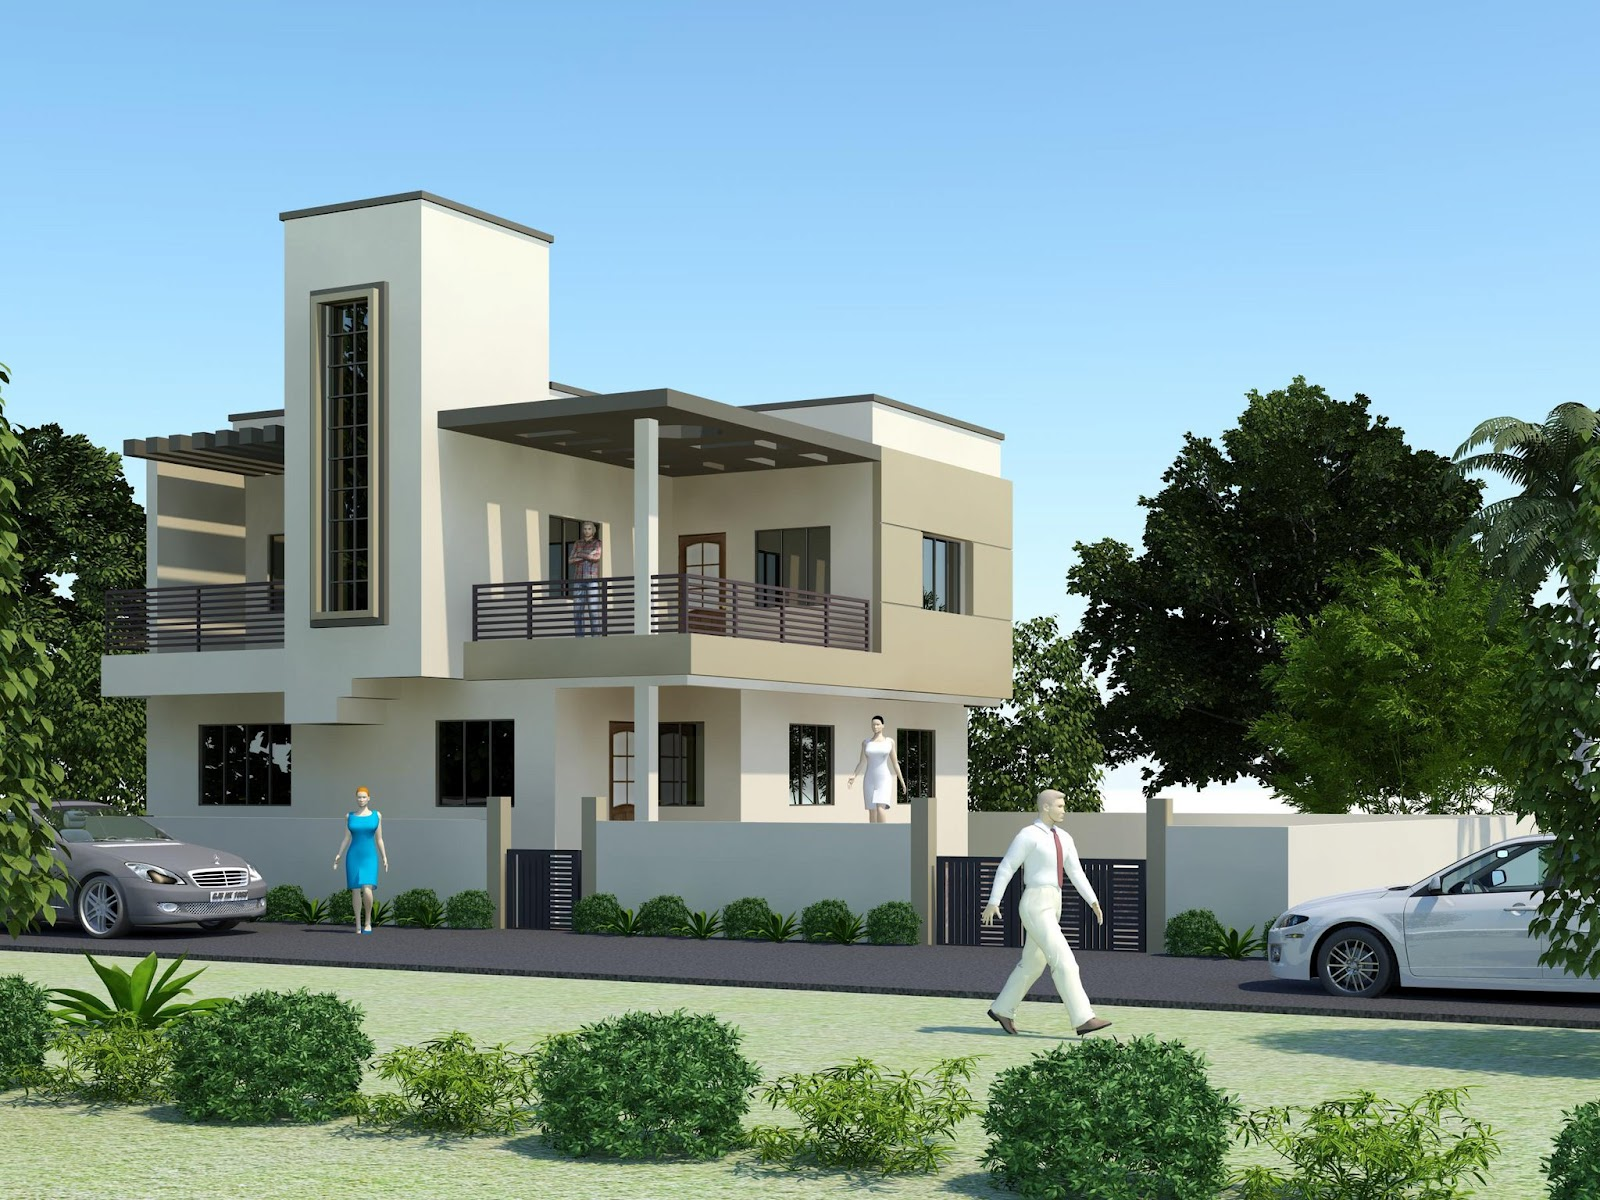 New home designs latest modern homes exterior designs for Home front design model